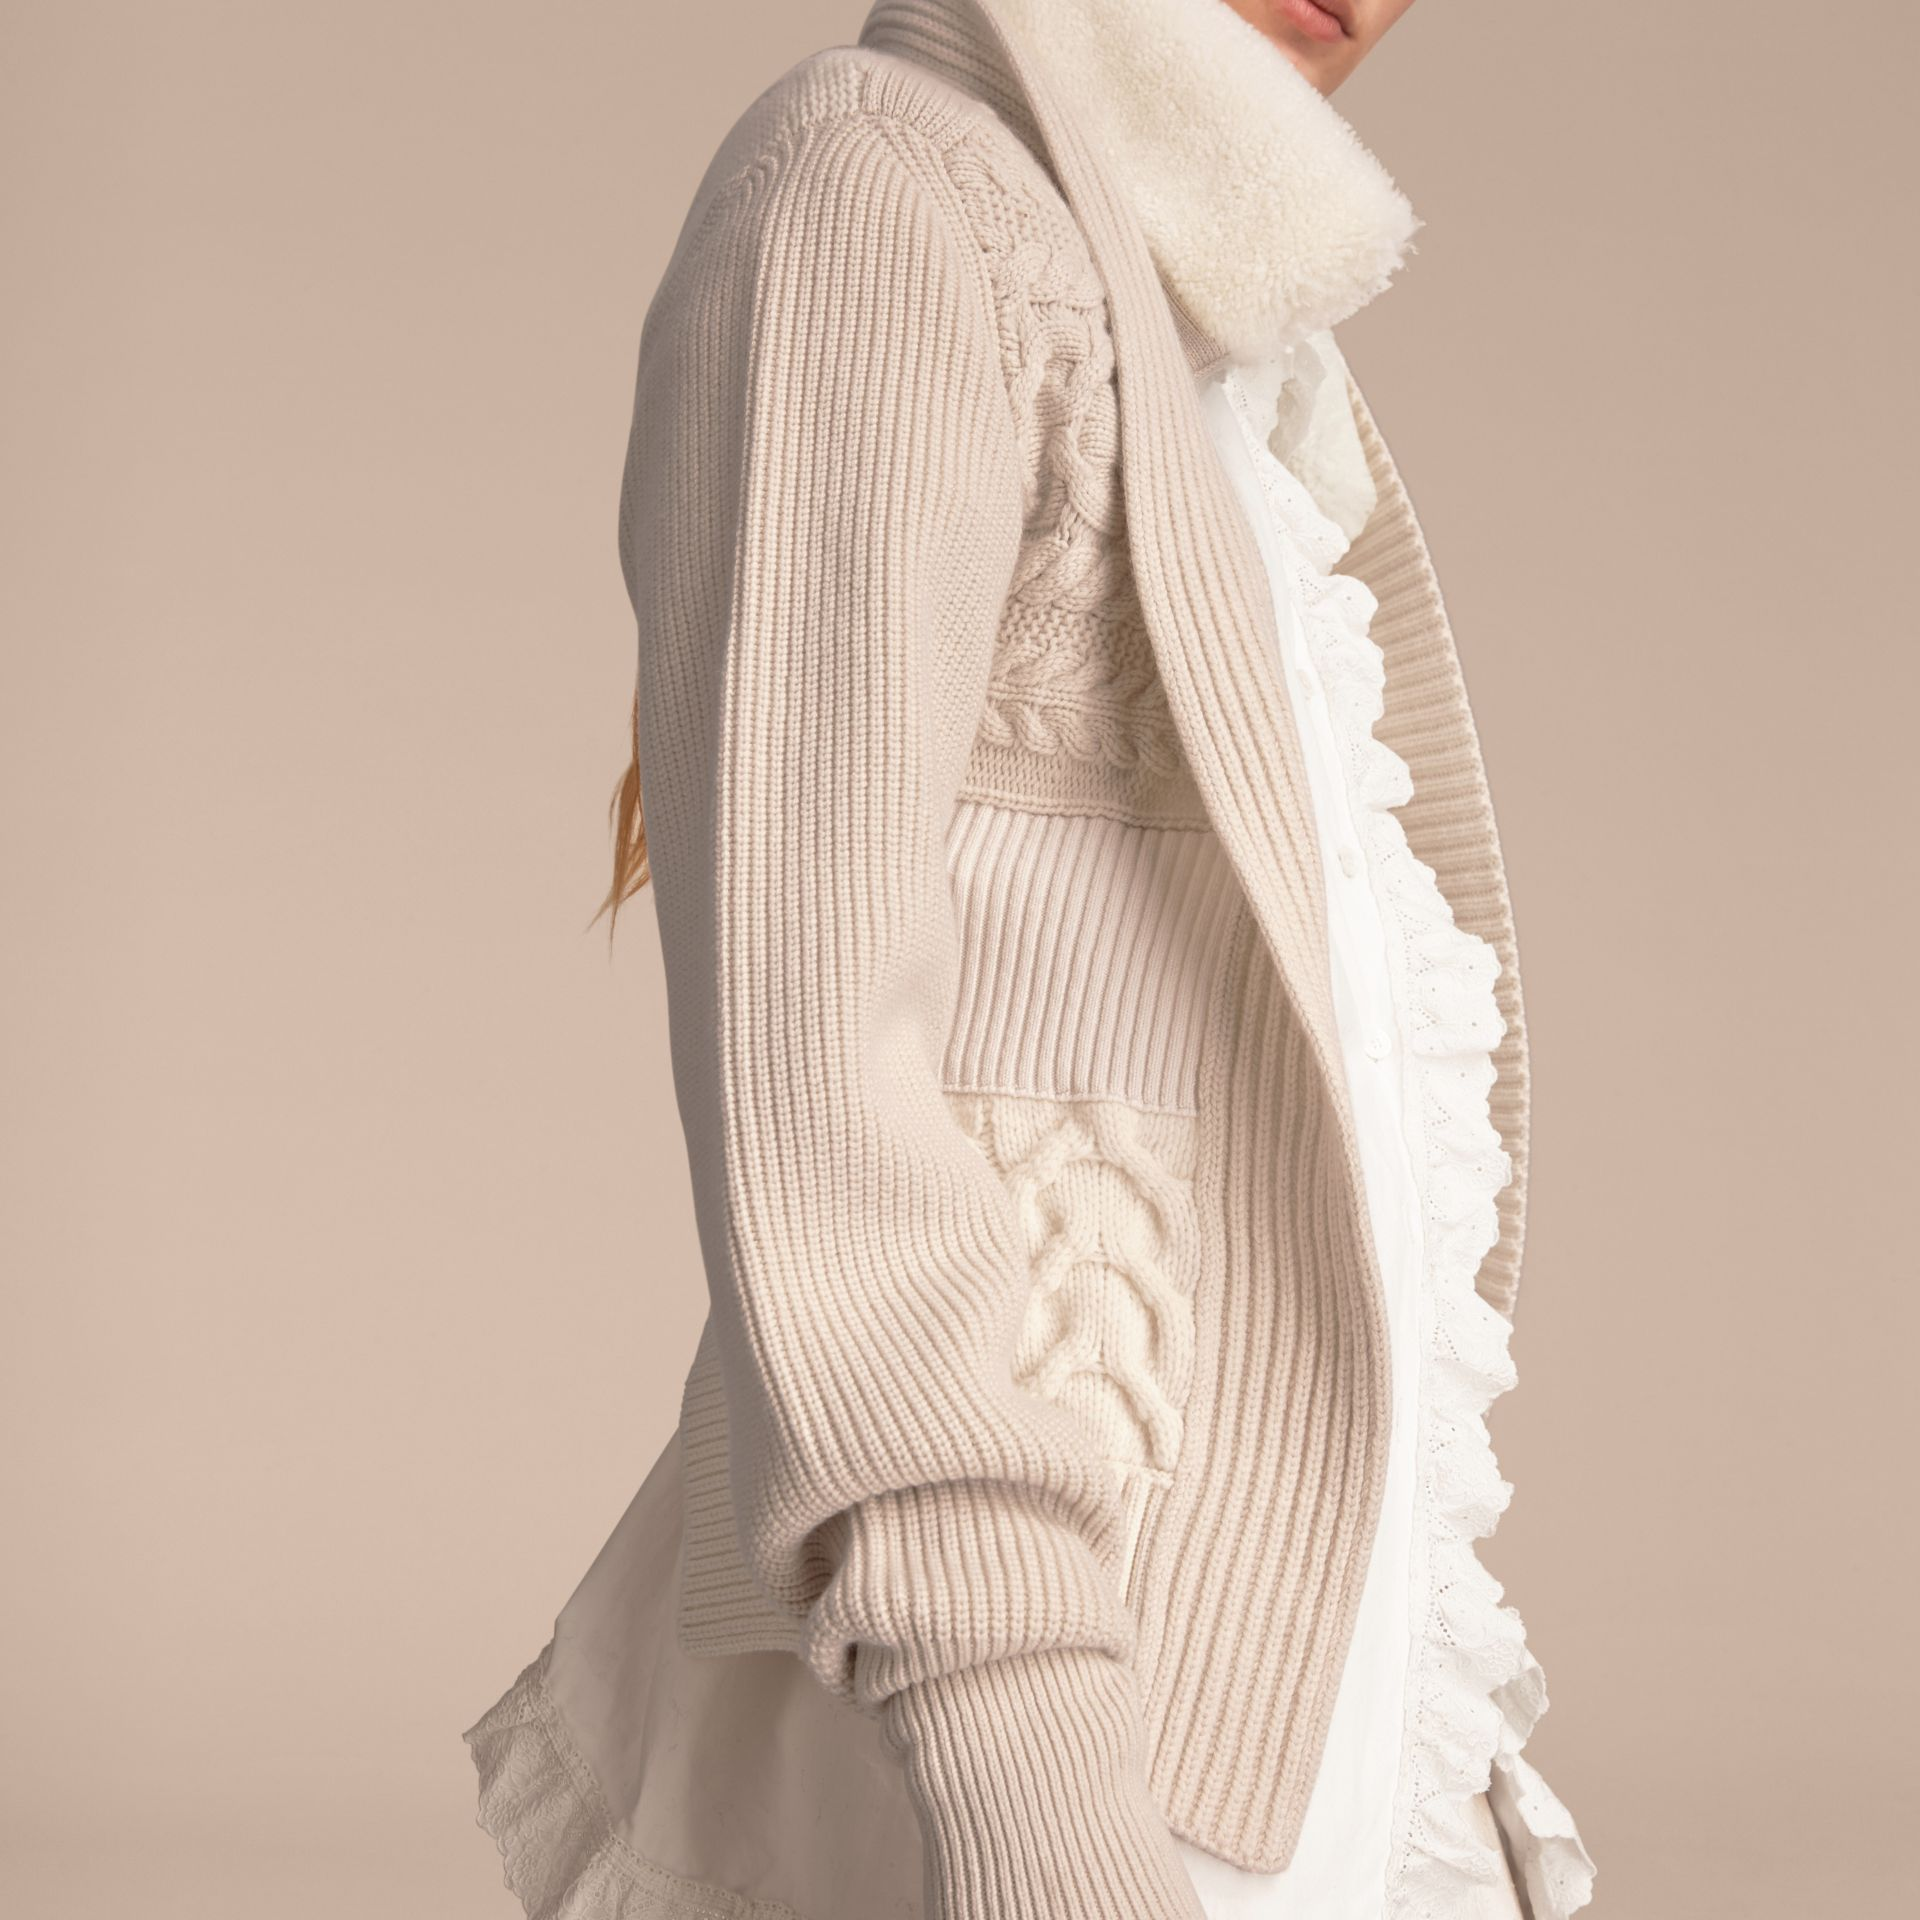 Shearling Collar Knitted Wool Cashmere Jacket - Women | Burberry Hong Kong - gallery image 6